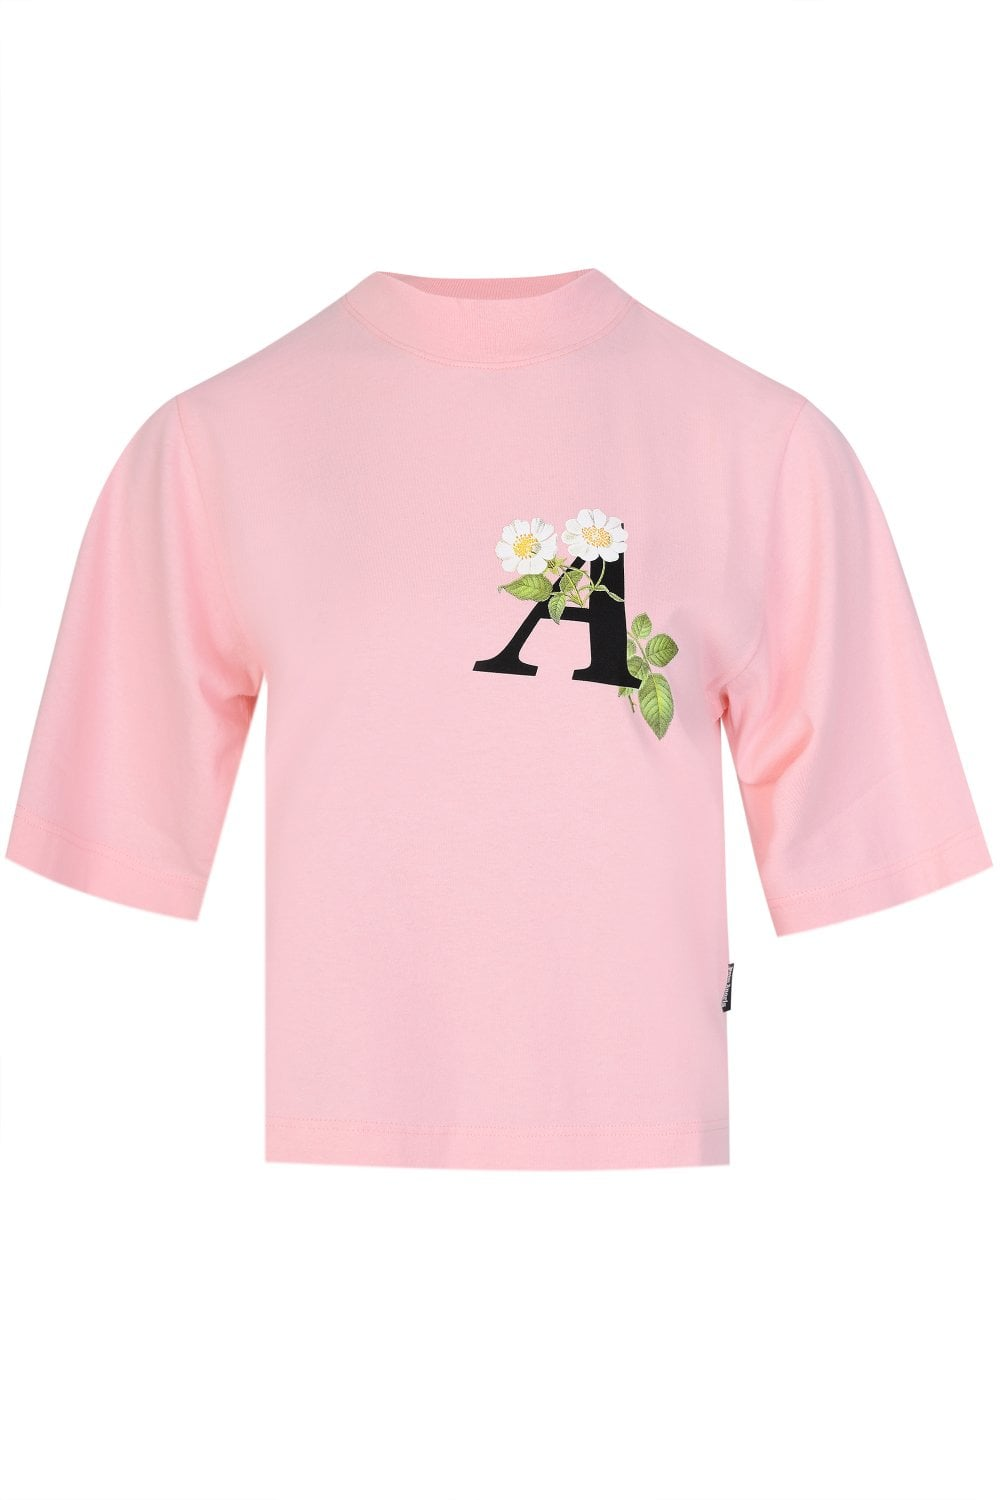 Palm Angels WOMEN'S DAISY CROPPED TEE